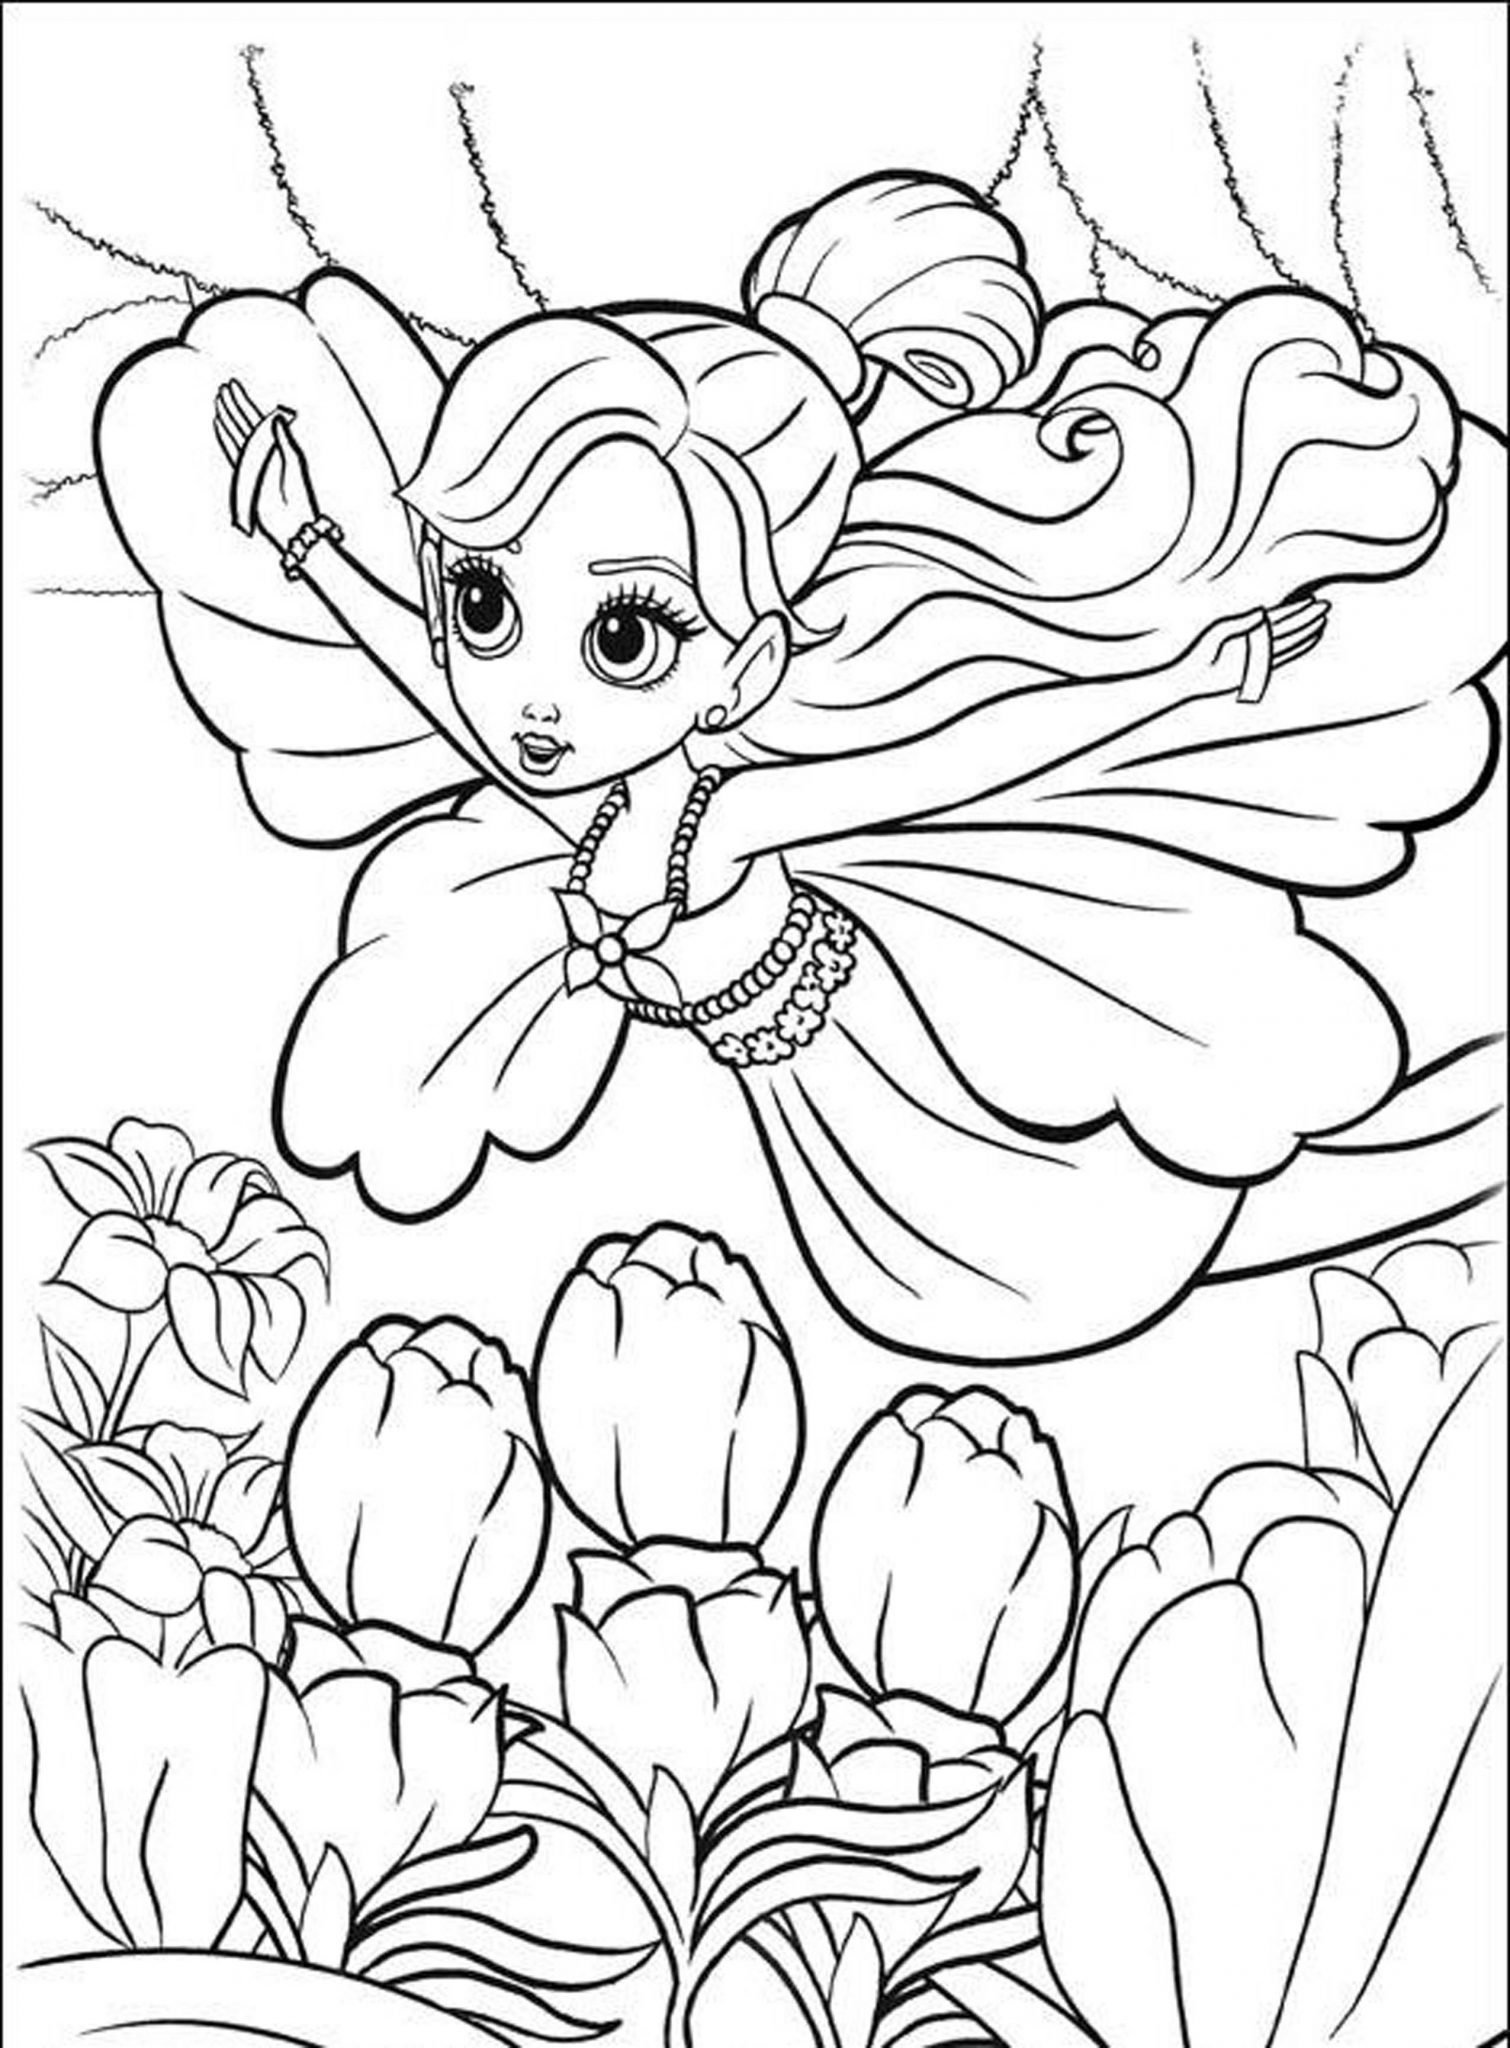 Print & Download - Coloring Pages for Girls, Recommend a ...